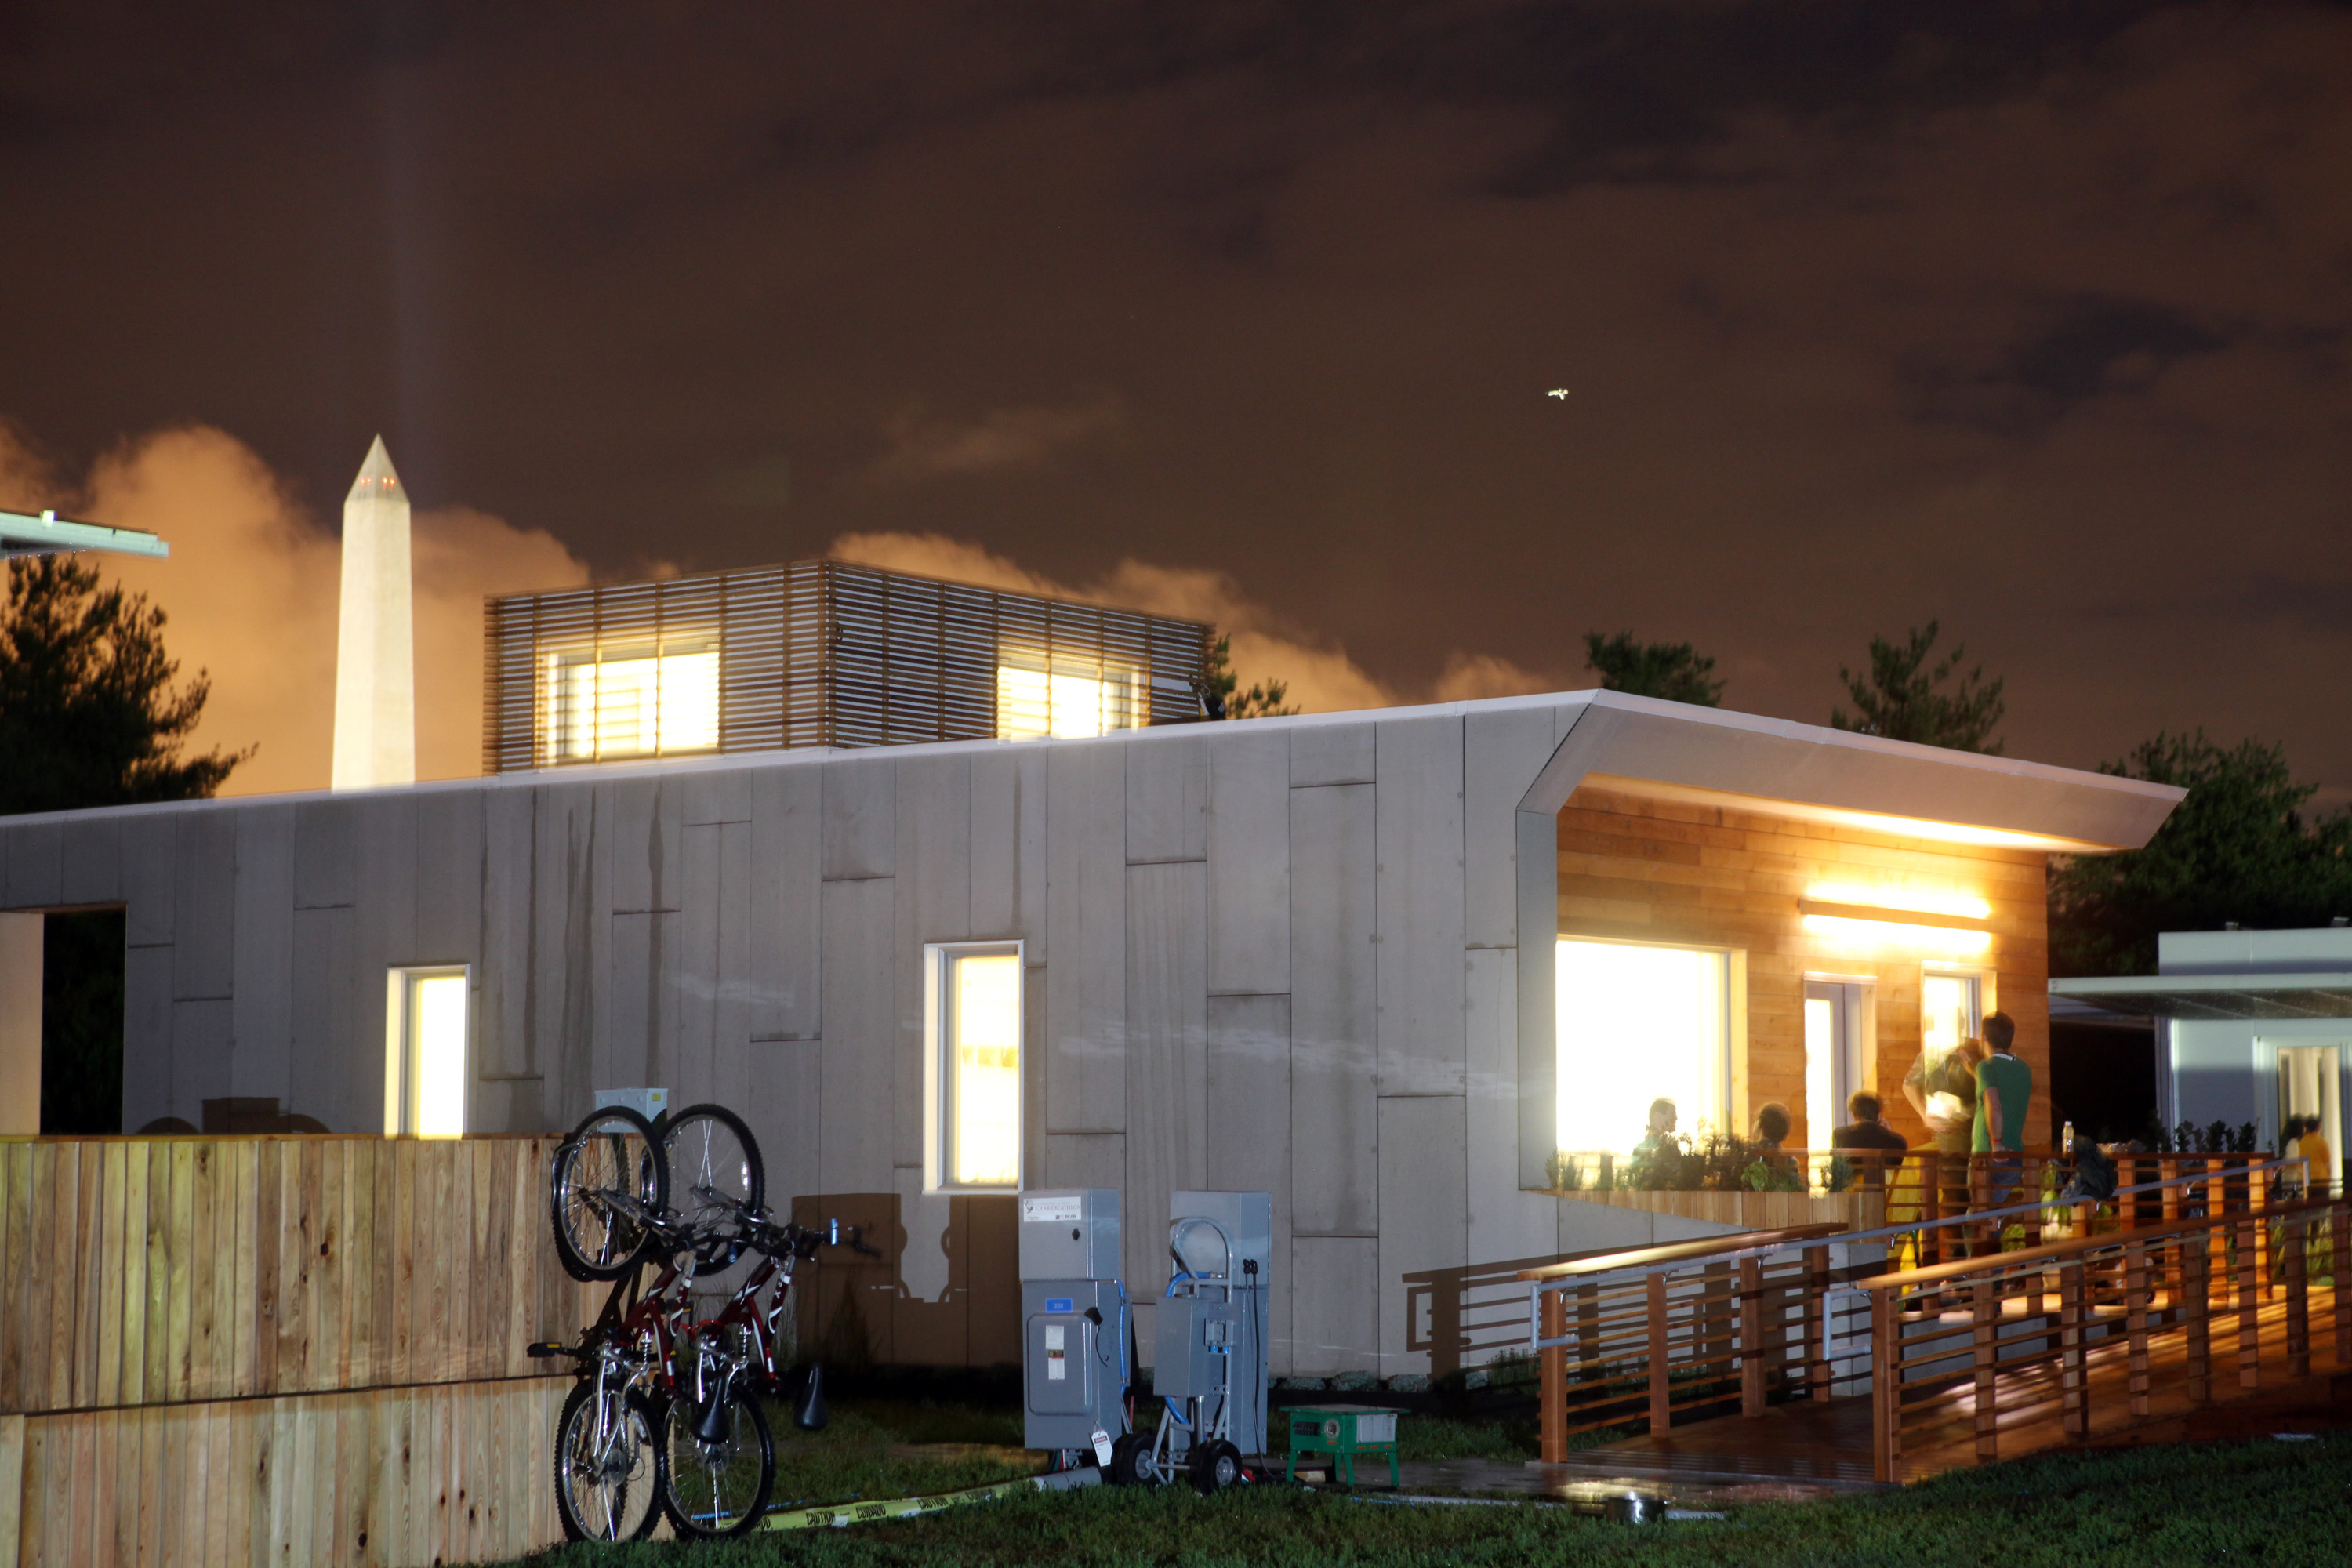 Solar Decathlon 2011